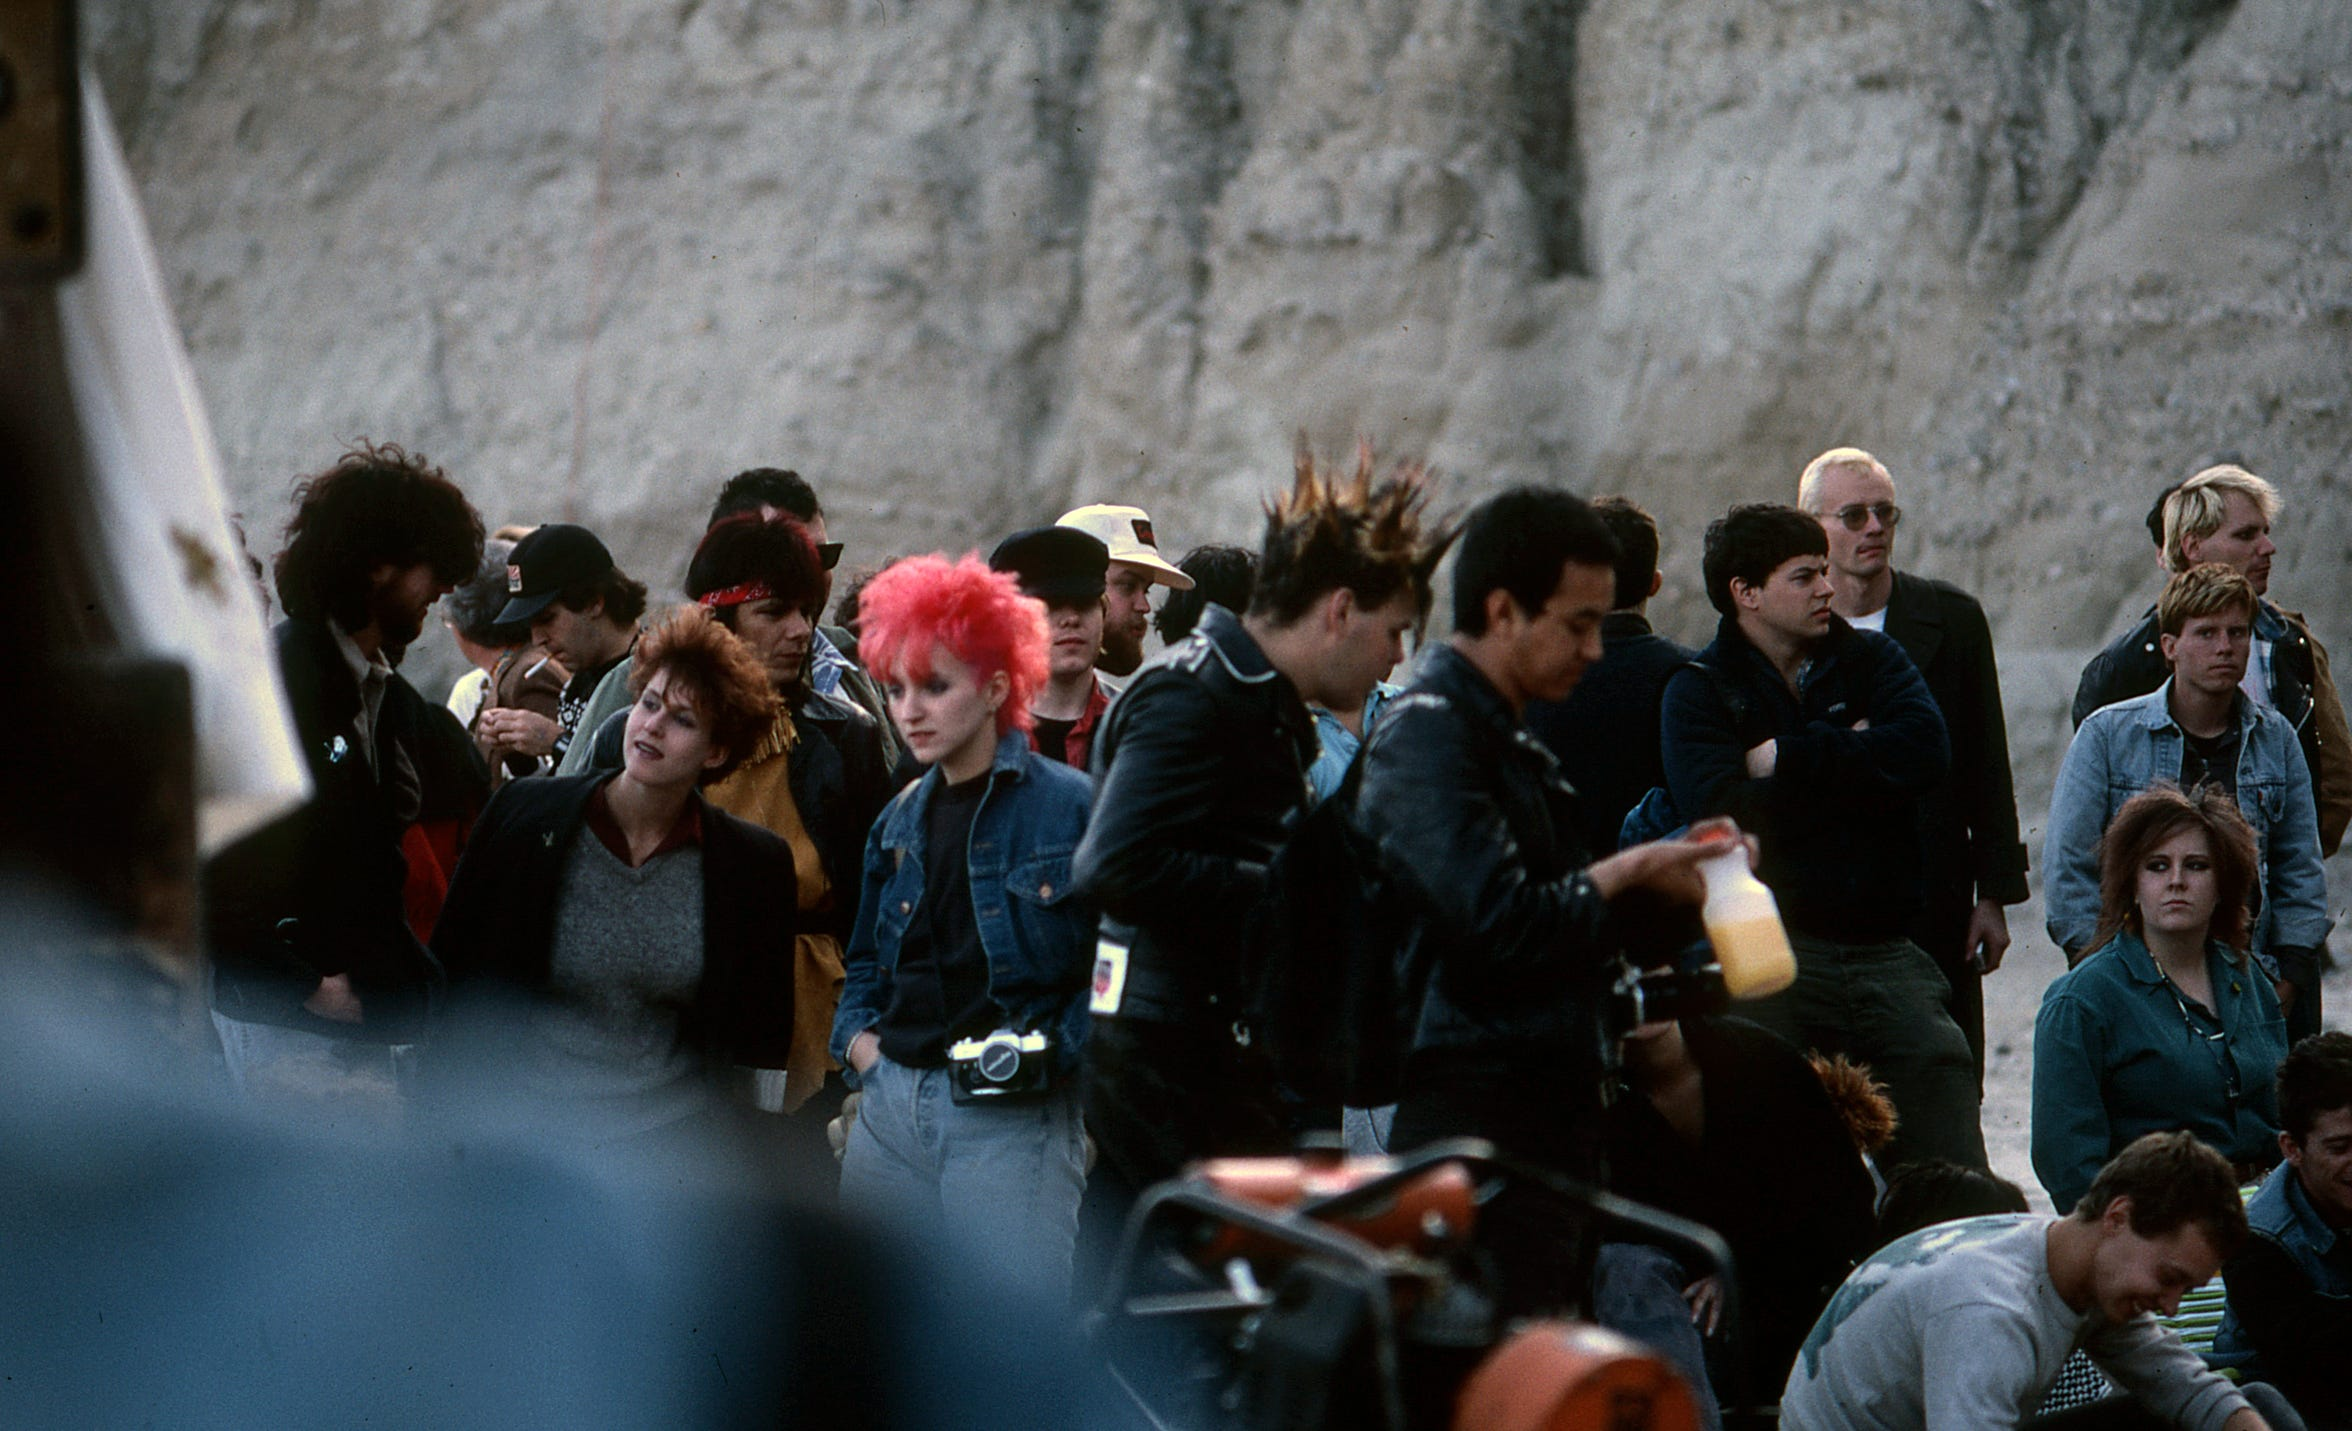 The crowd gathers at Mojave Auszug in Box Canyon in Mecca, Calif. on March 4, 1984.